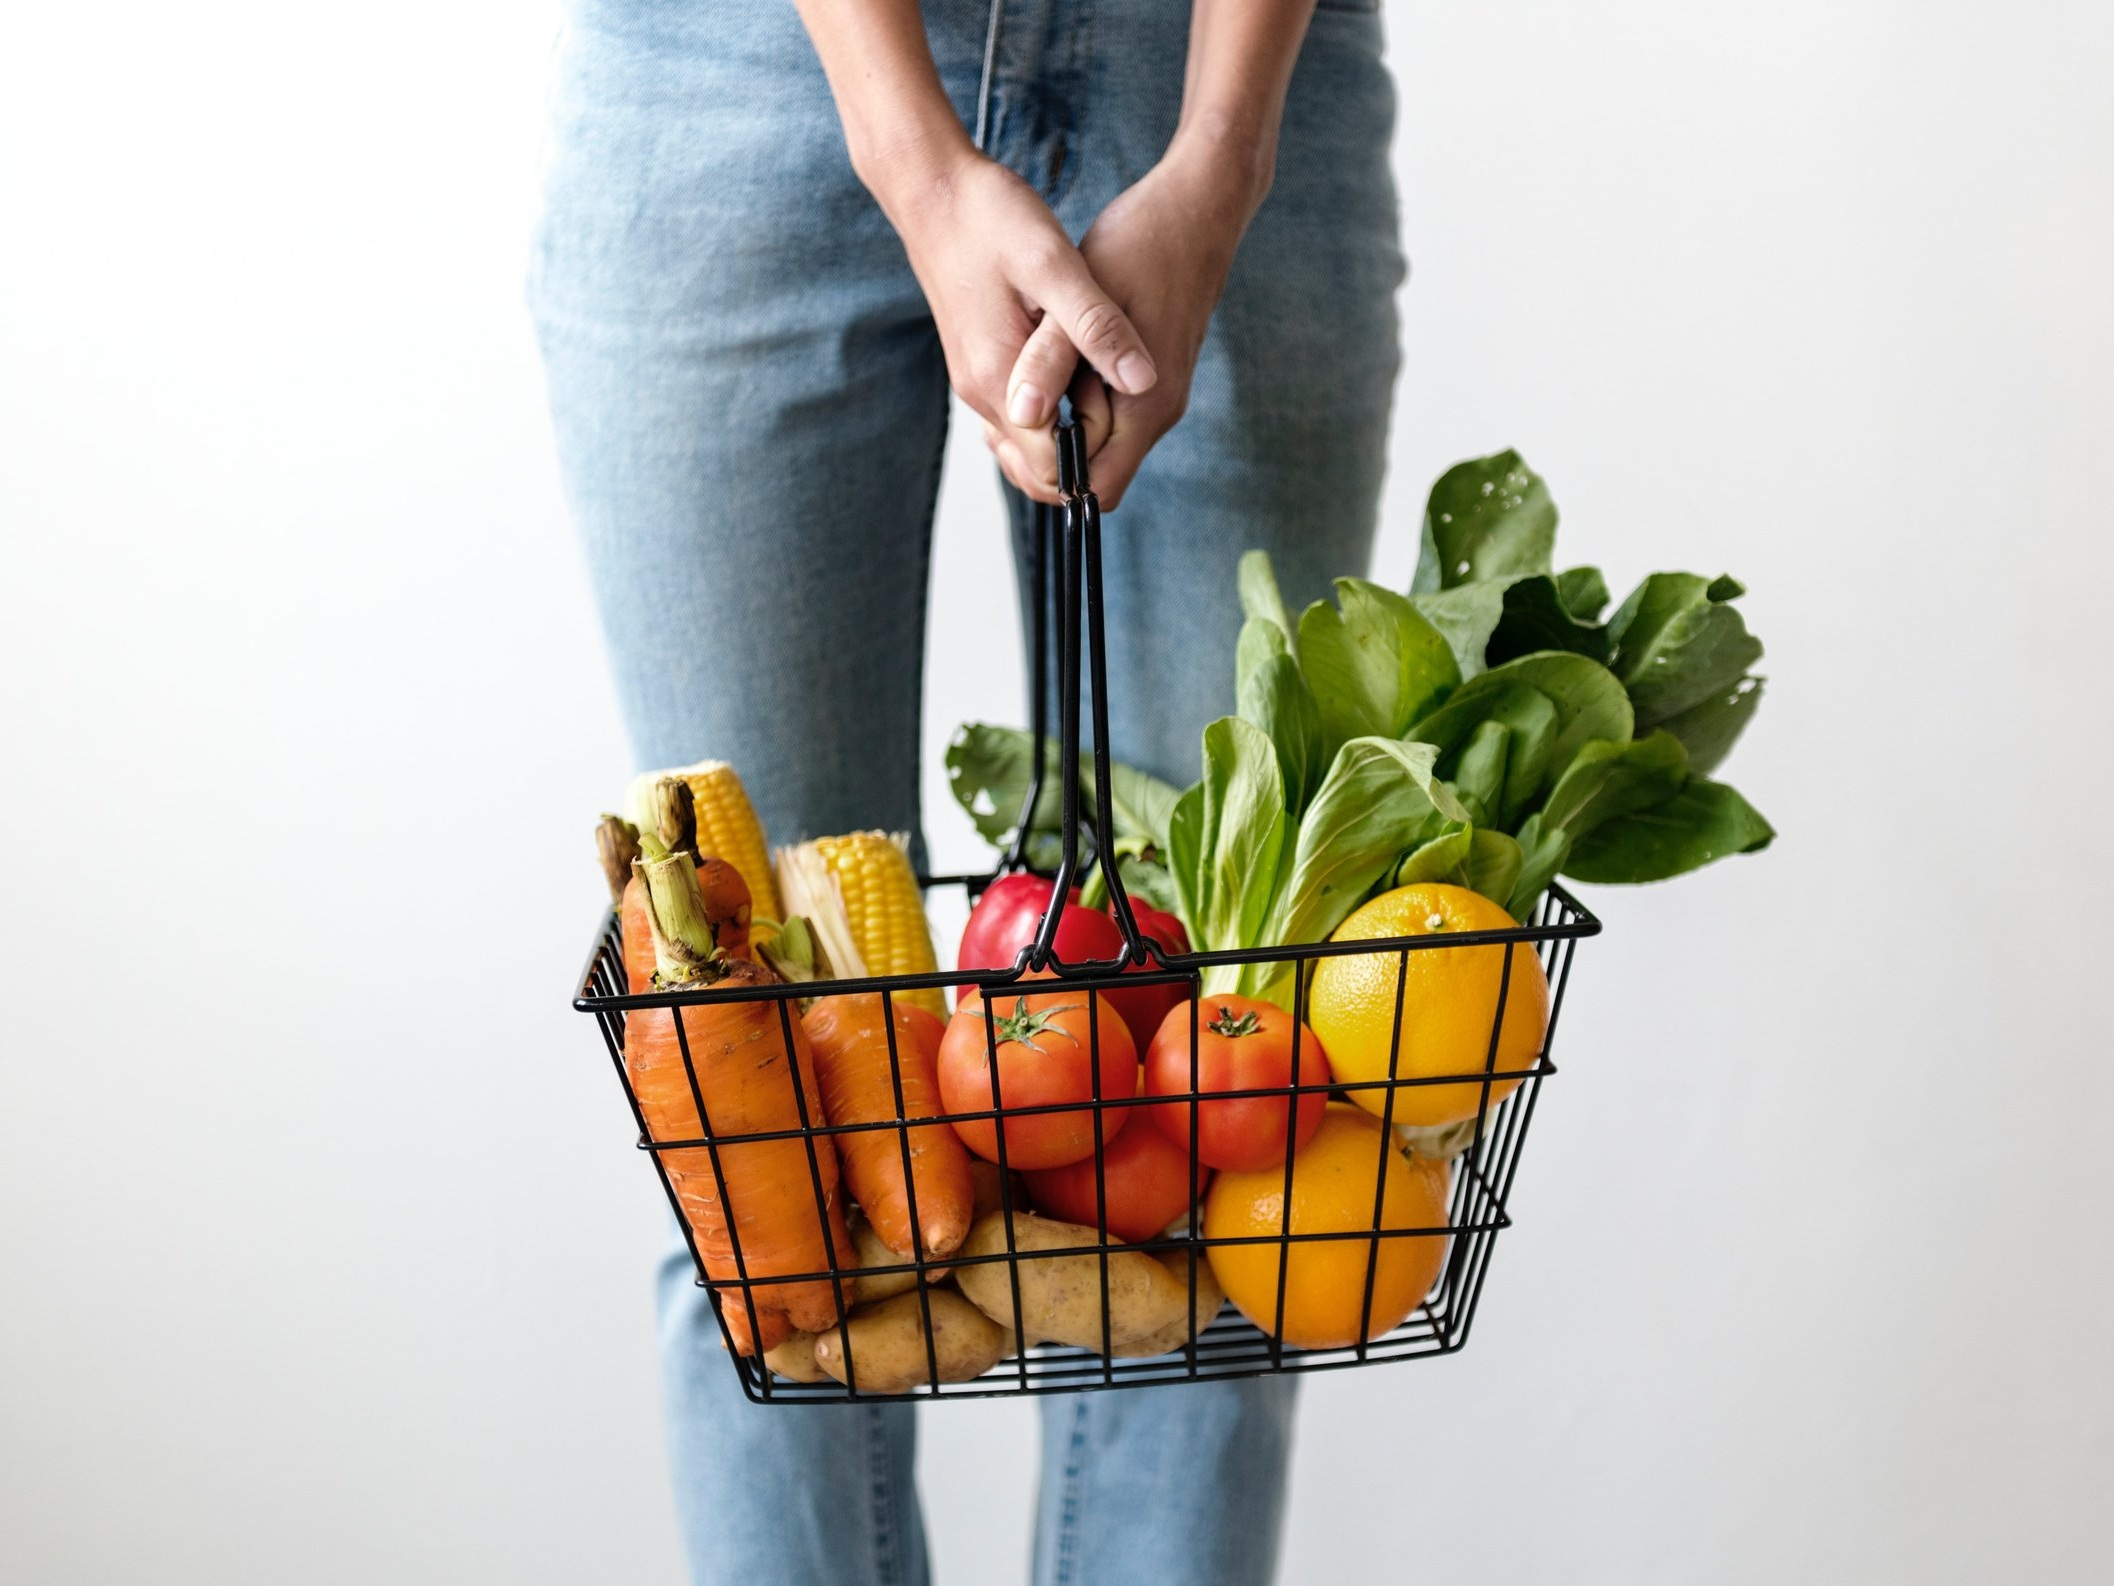 You Can Follow a Low-Carb Diet Without Blowing Your Grocery Budget - POPSUGAR